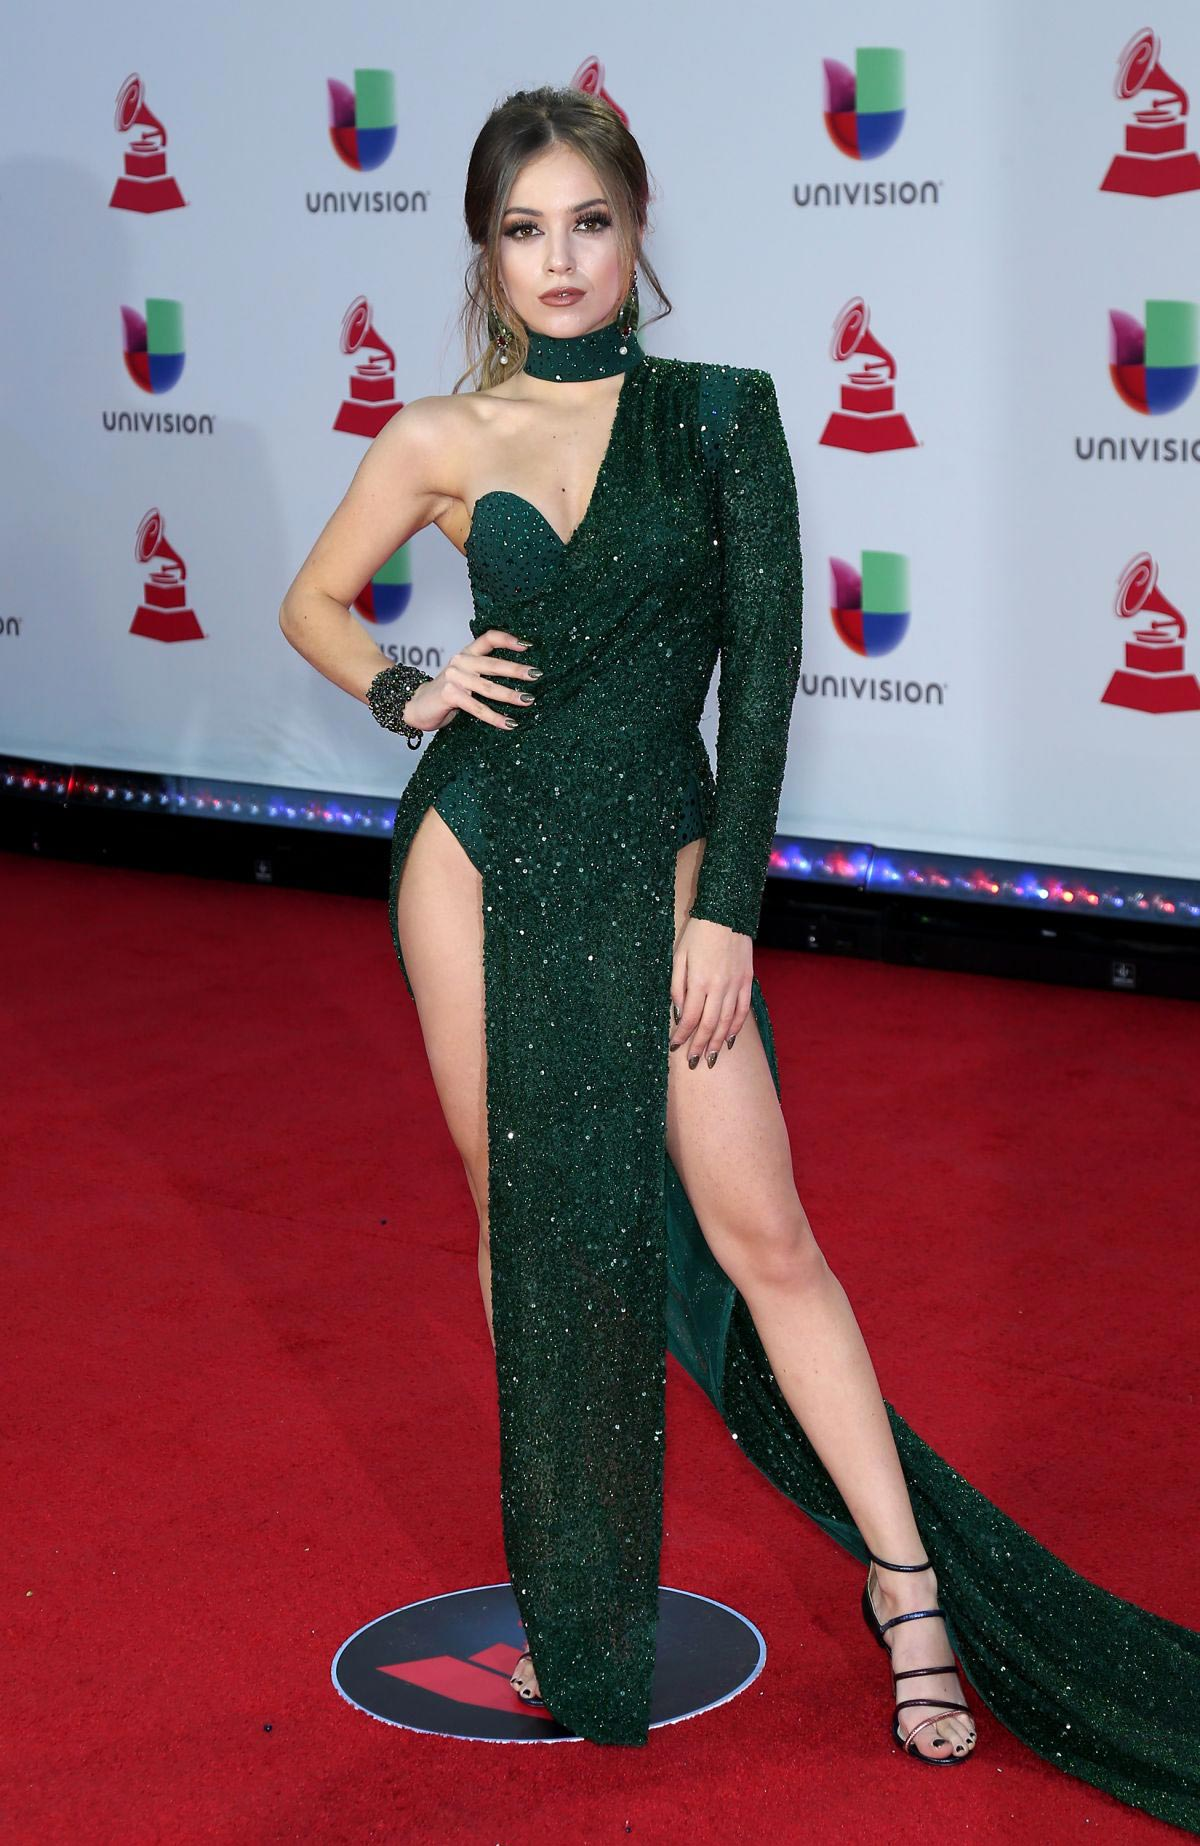 Ana Mena at 2018 Latin Grammy Awards in Las Vegas 2018/11/15 1